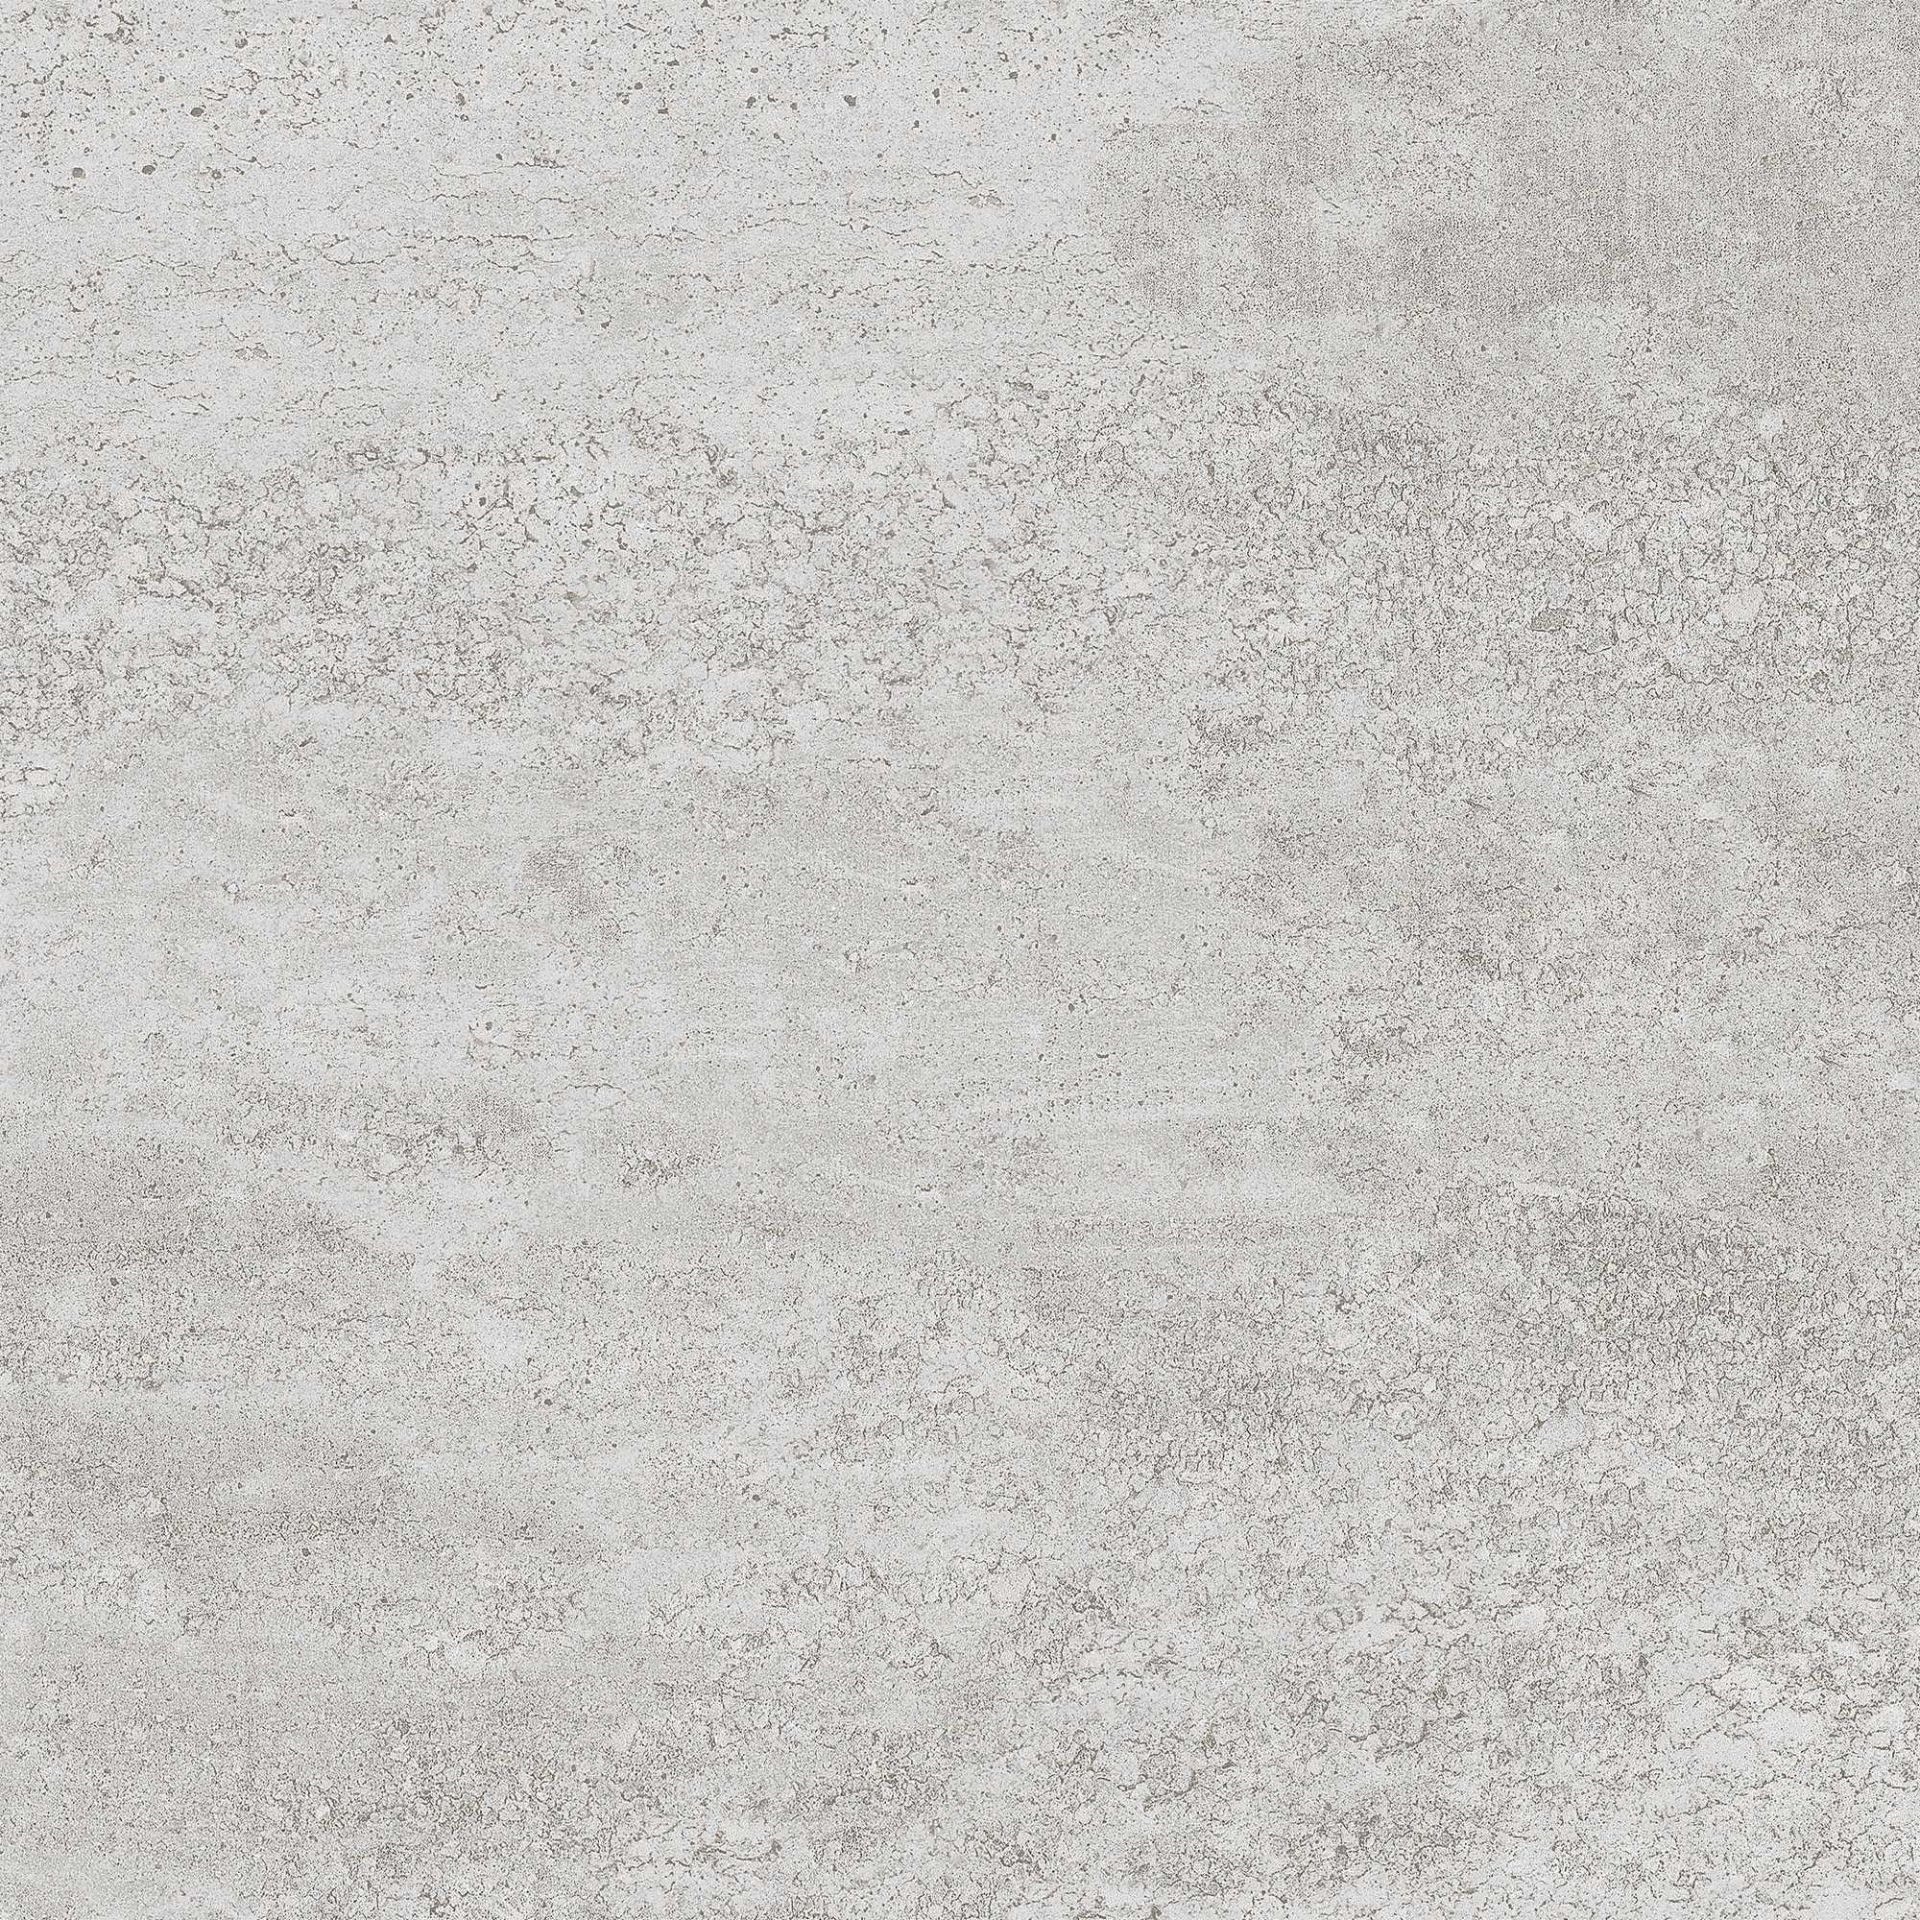 RRP £1400 Pallet To Contain 40 Brand New Packs Of 5 Johnson's Alr03A Crafted Grey Textured Tiles (